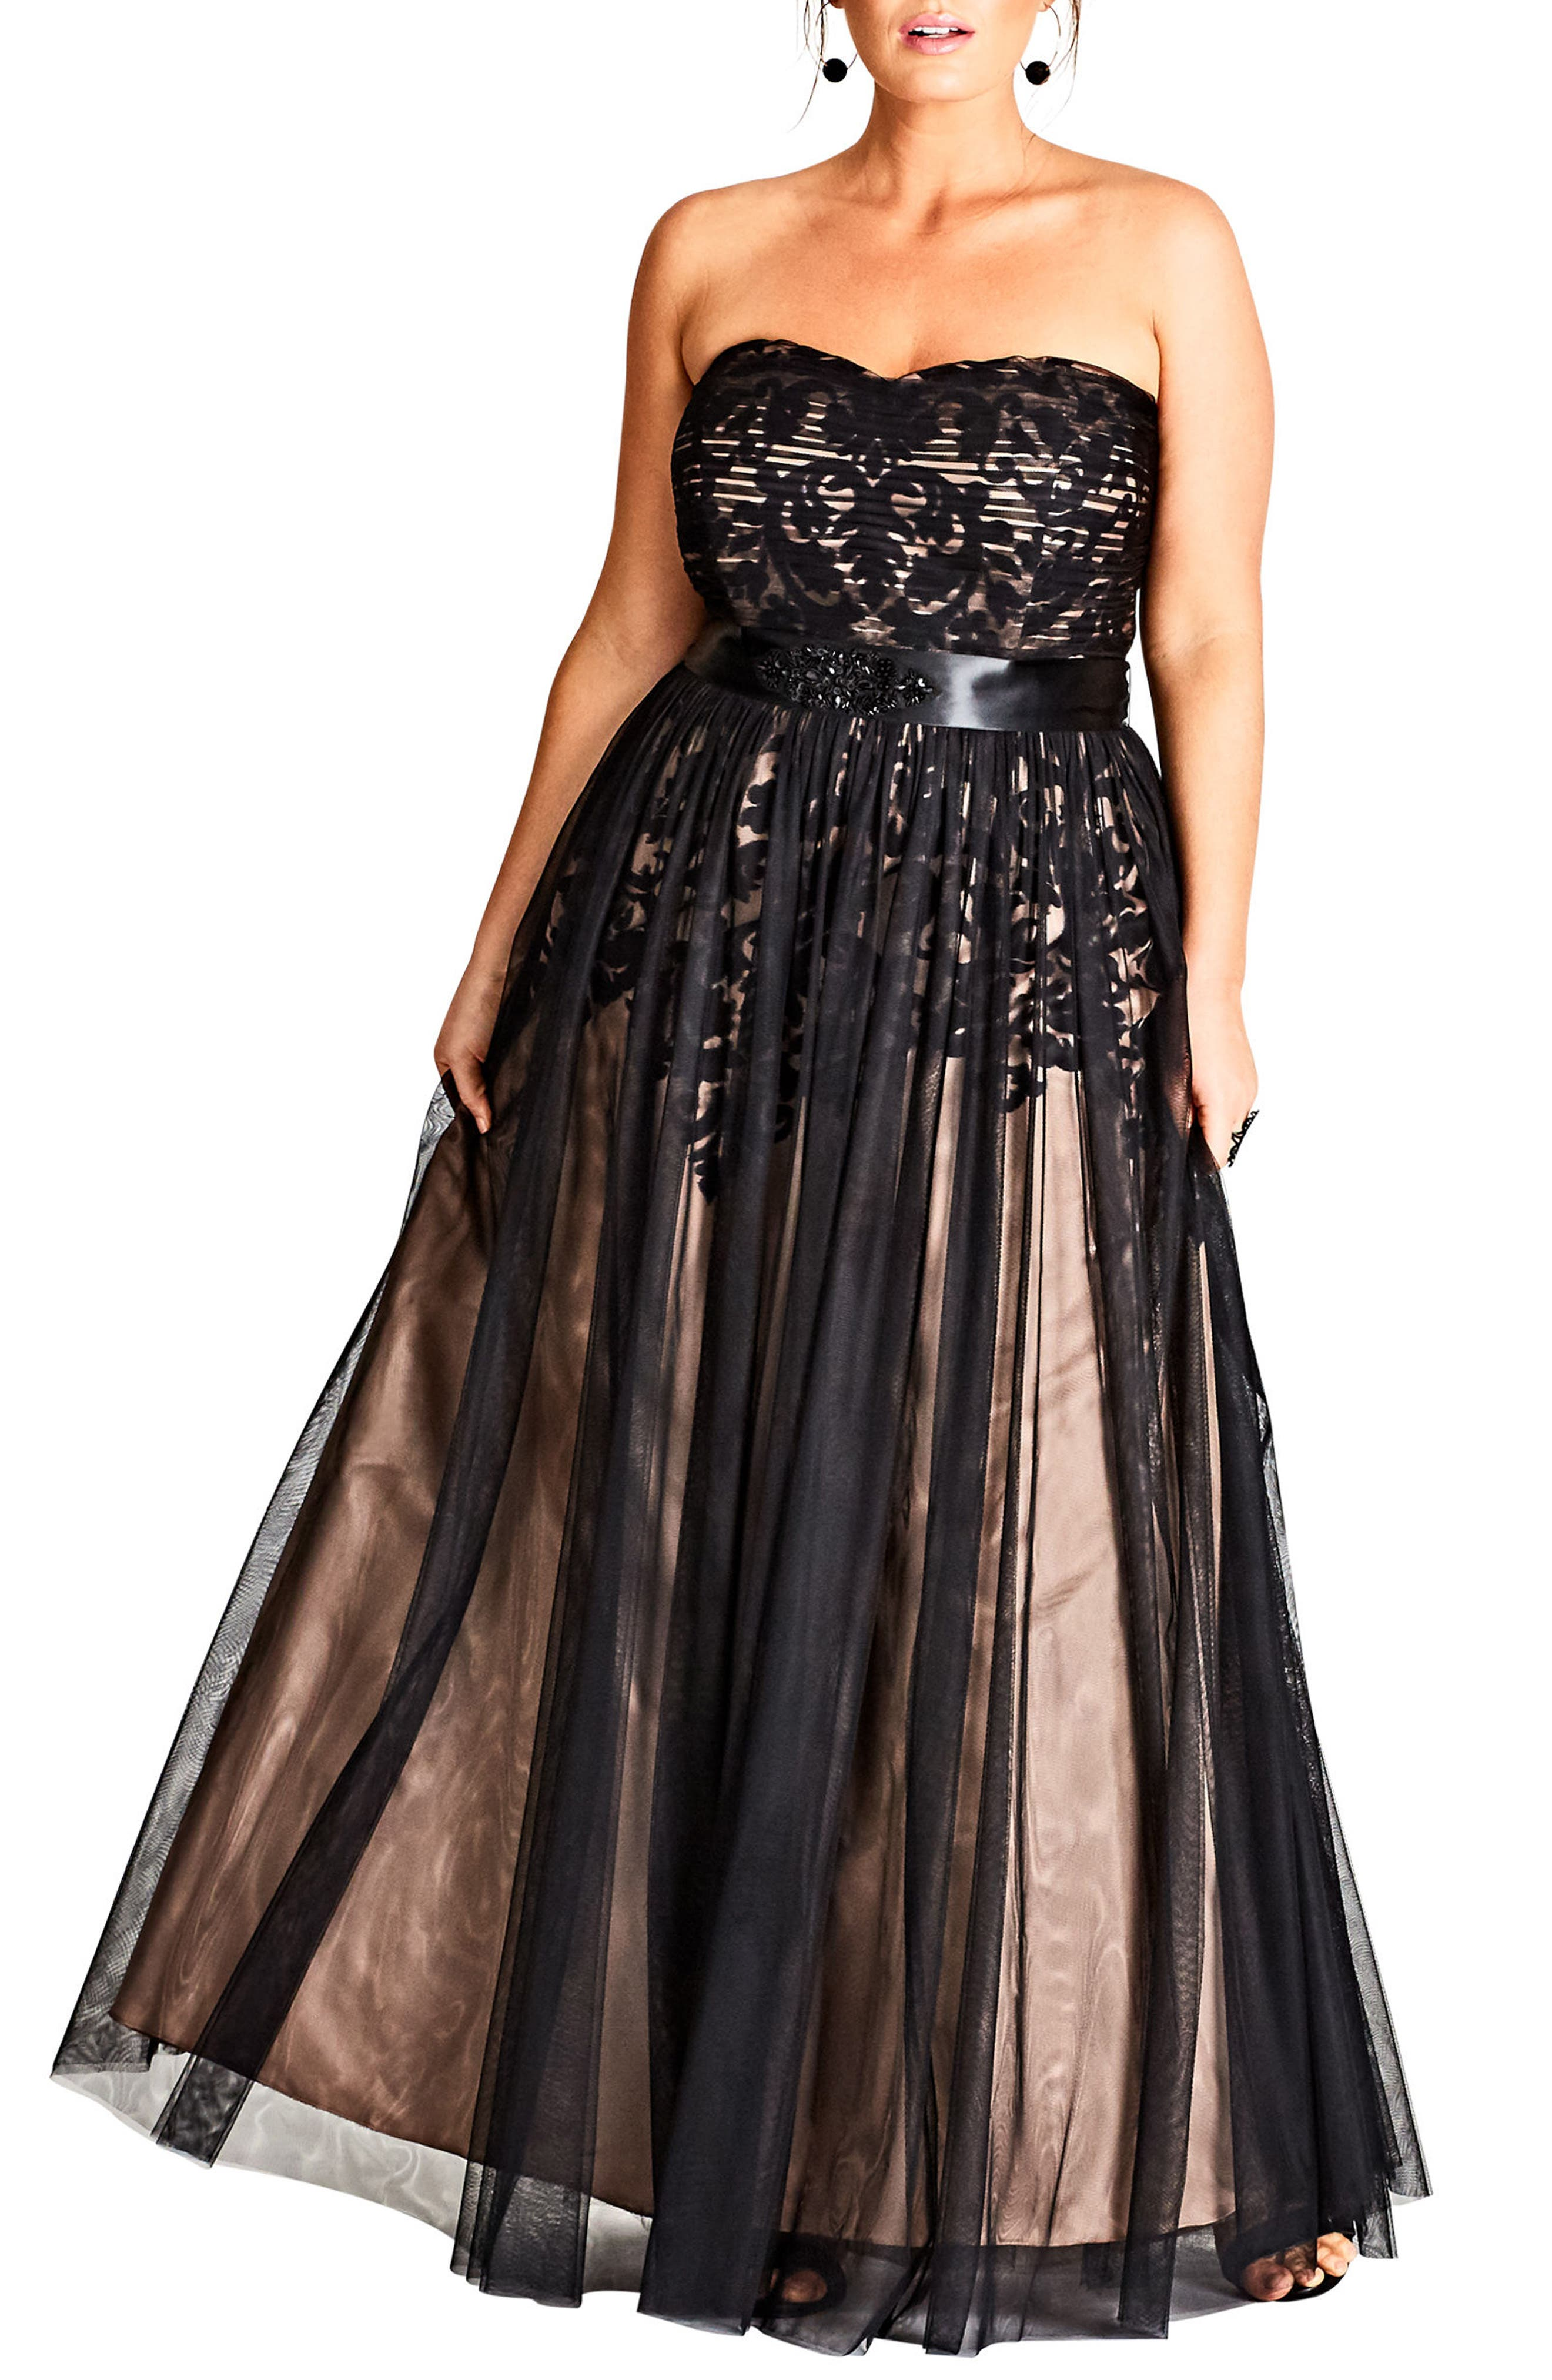 CITY CHIC Embellished Tulle Strapless Ballgown, Main, color, BLACK